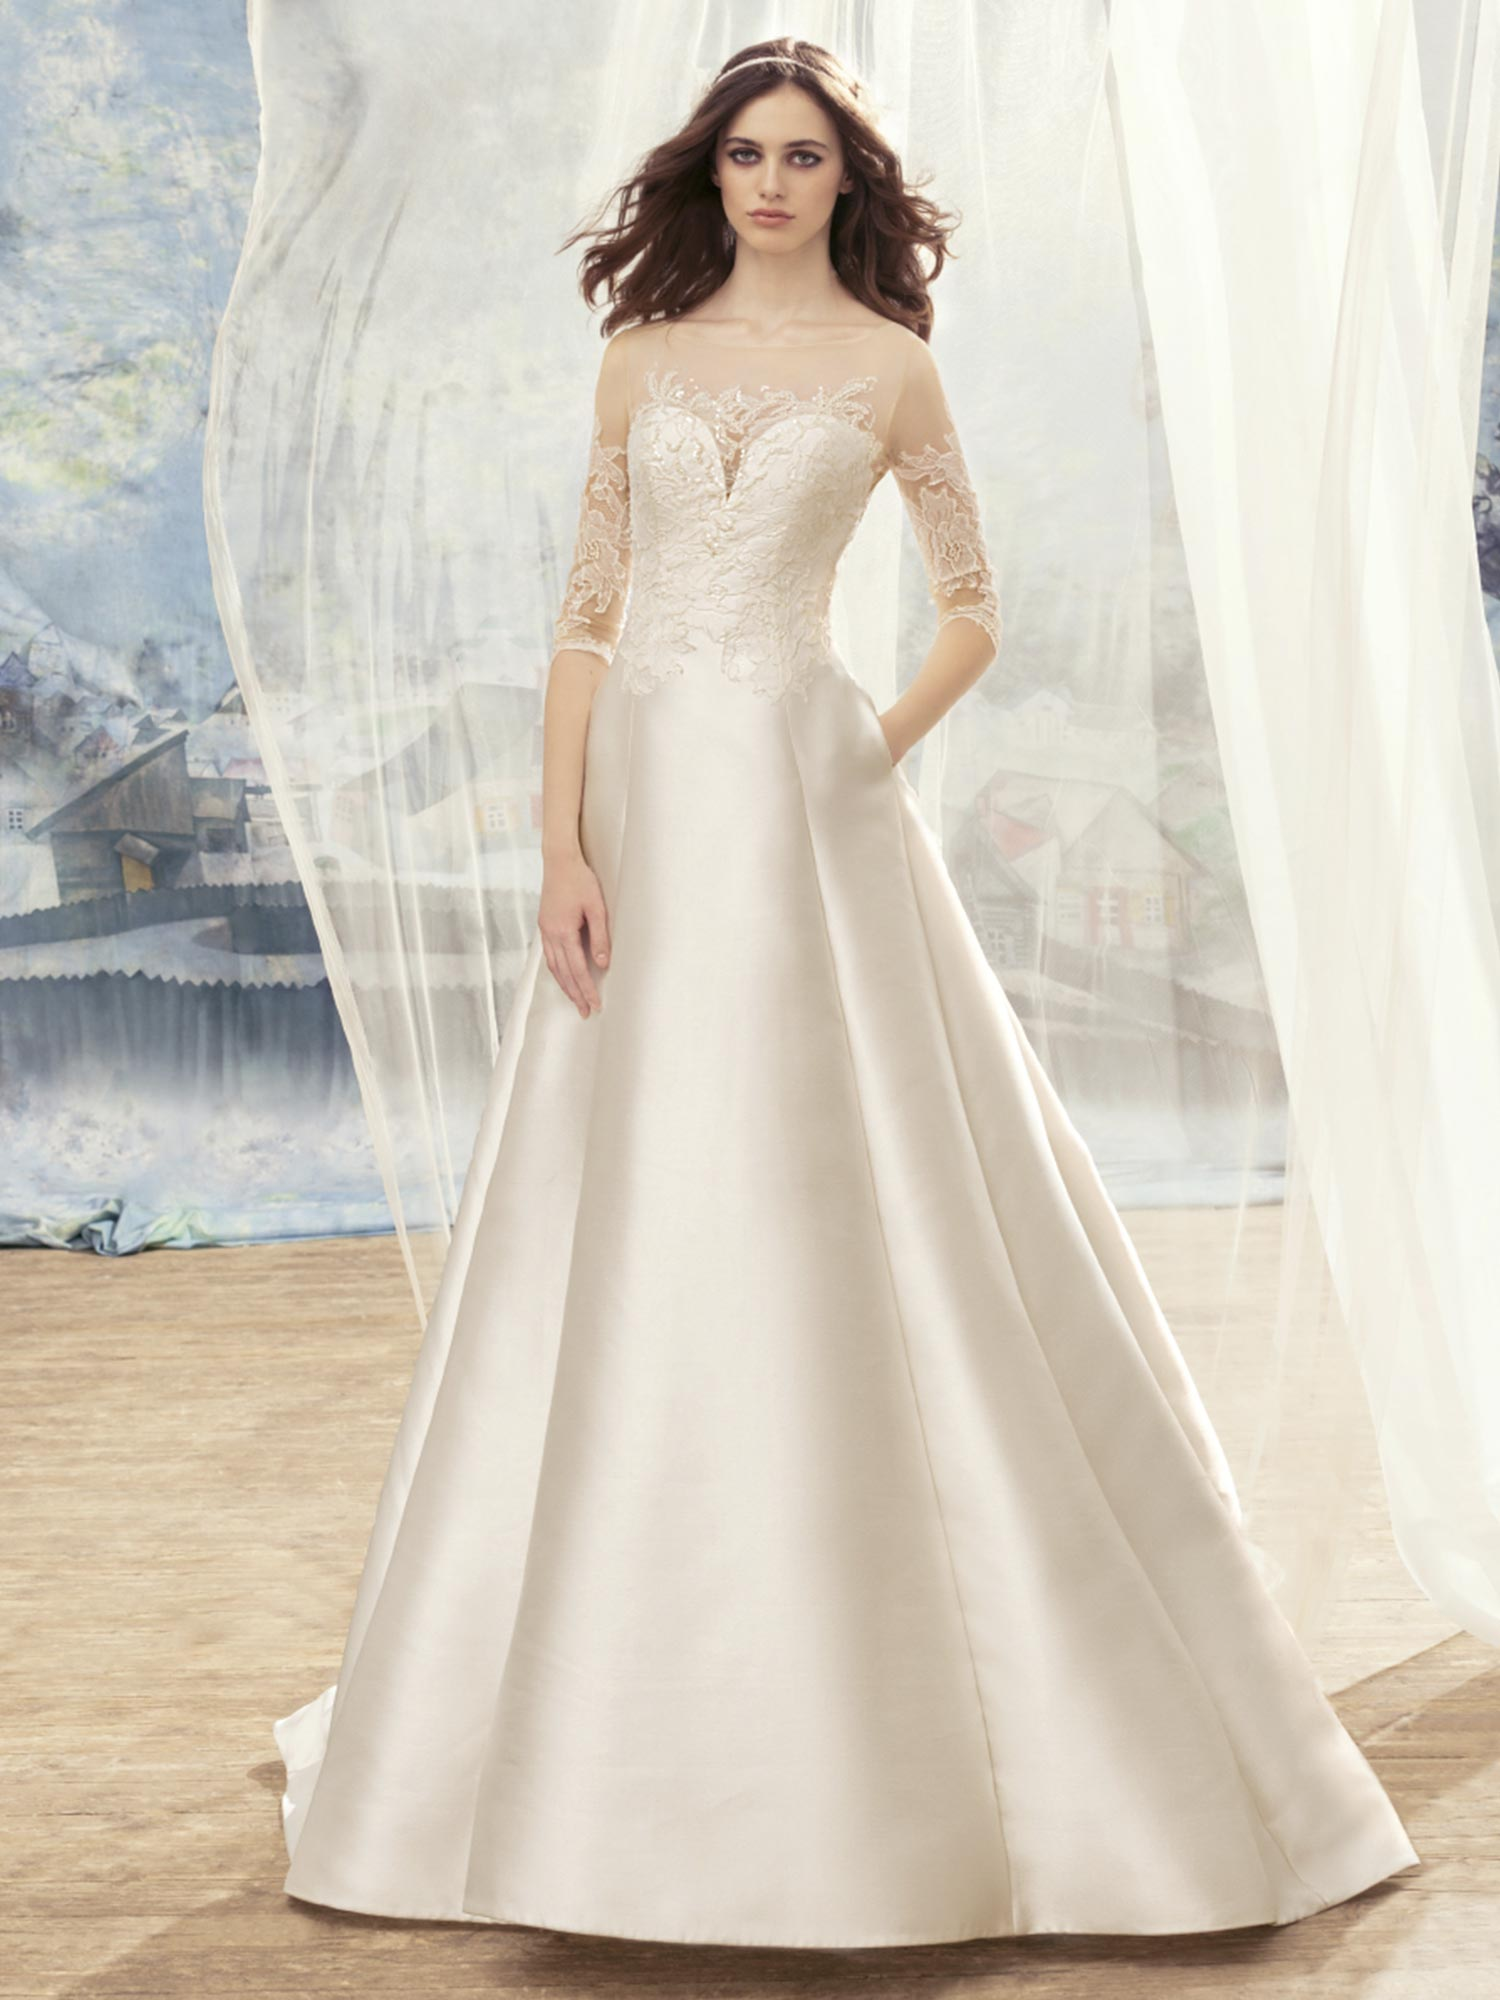 Papilio Mikado A-line wedding dress with lace sleeves